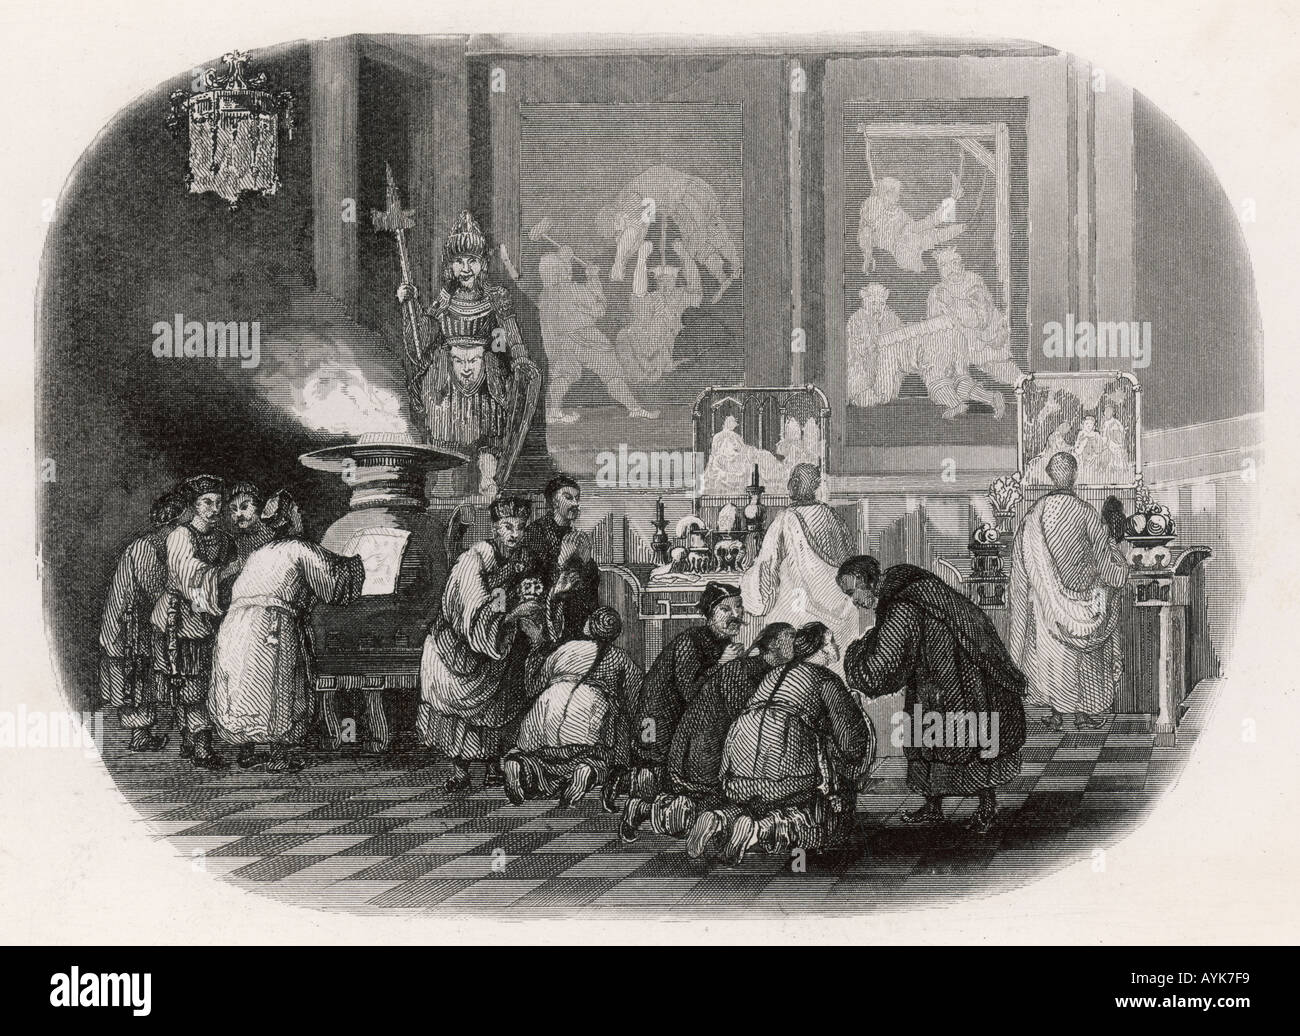 China Ancestor Cult 1846 - Stock Image